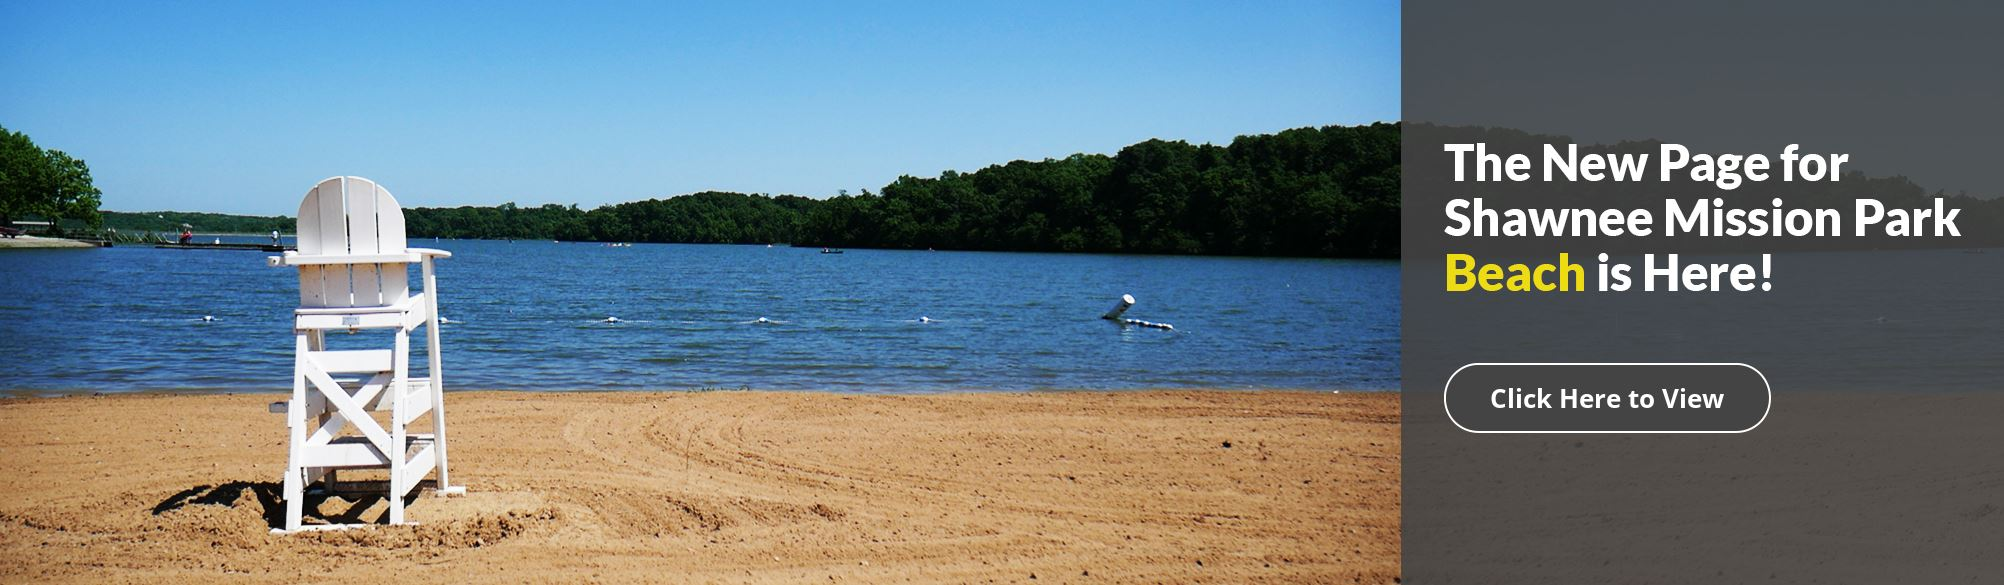 Button to Full Page for Shawnee Mission Park Beach